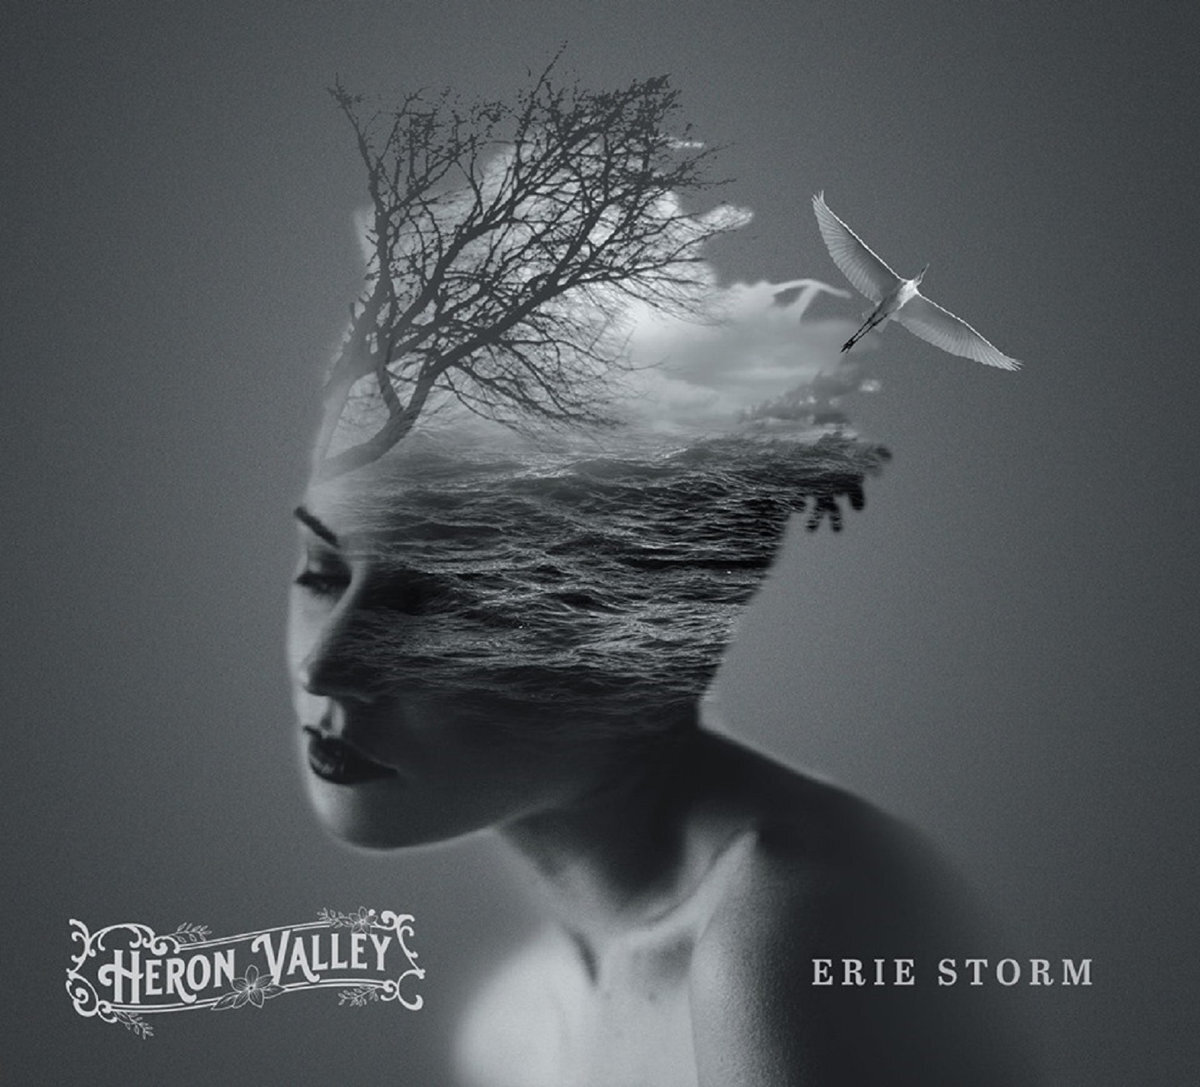 erie storm artwork.jpg